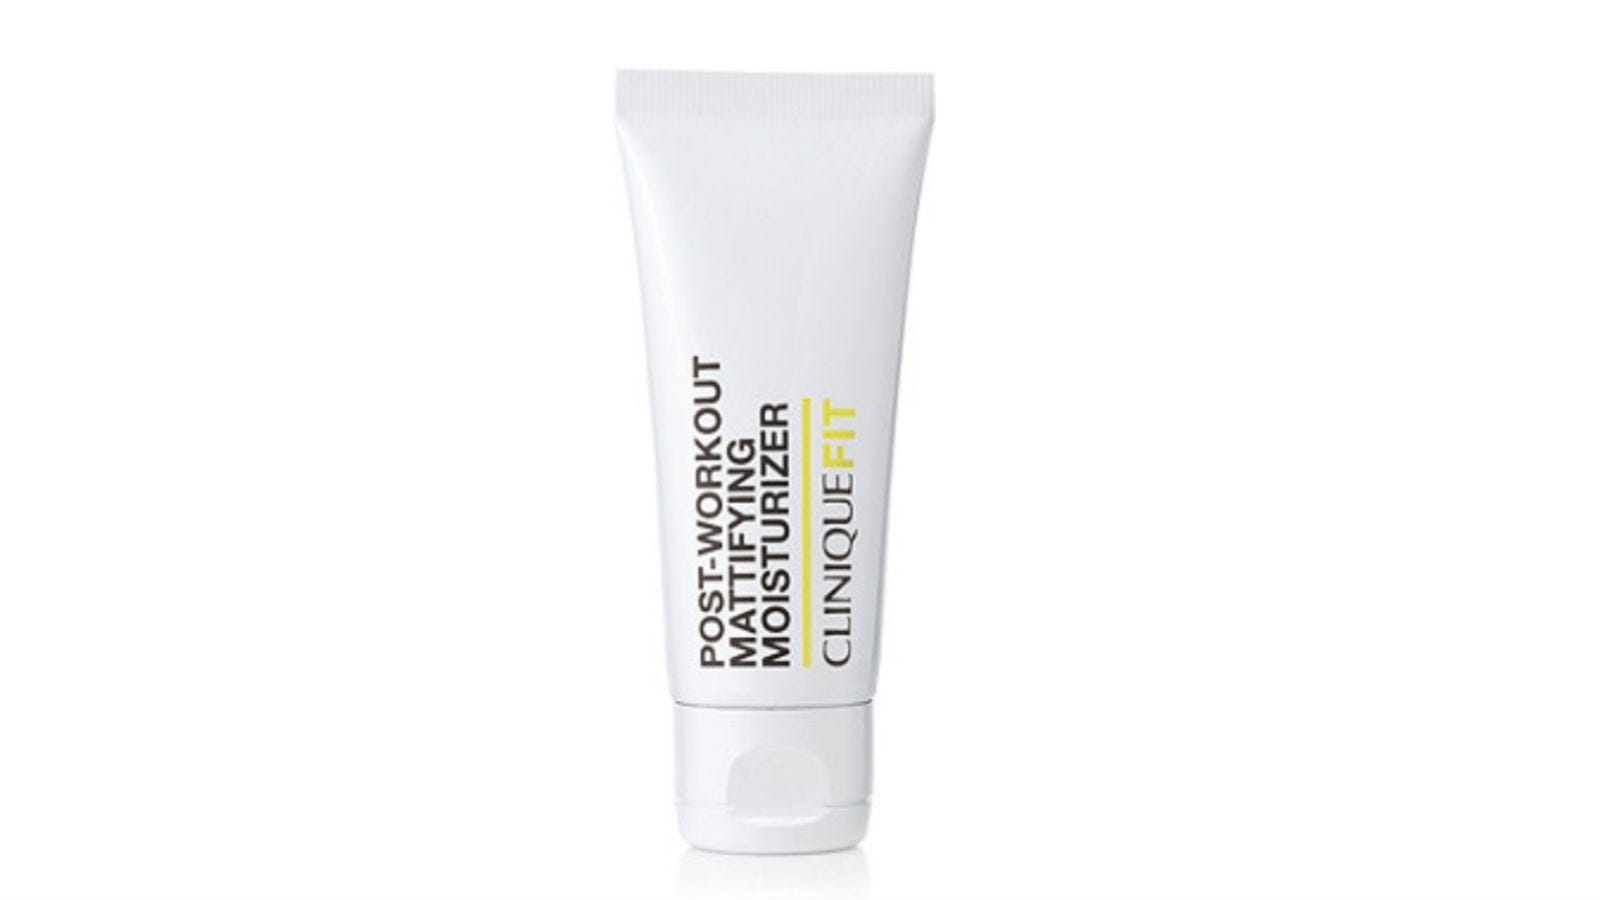 A tube of CliniqueFIT Post-Workout Mattifying Moisturizer.